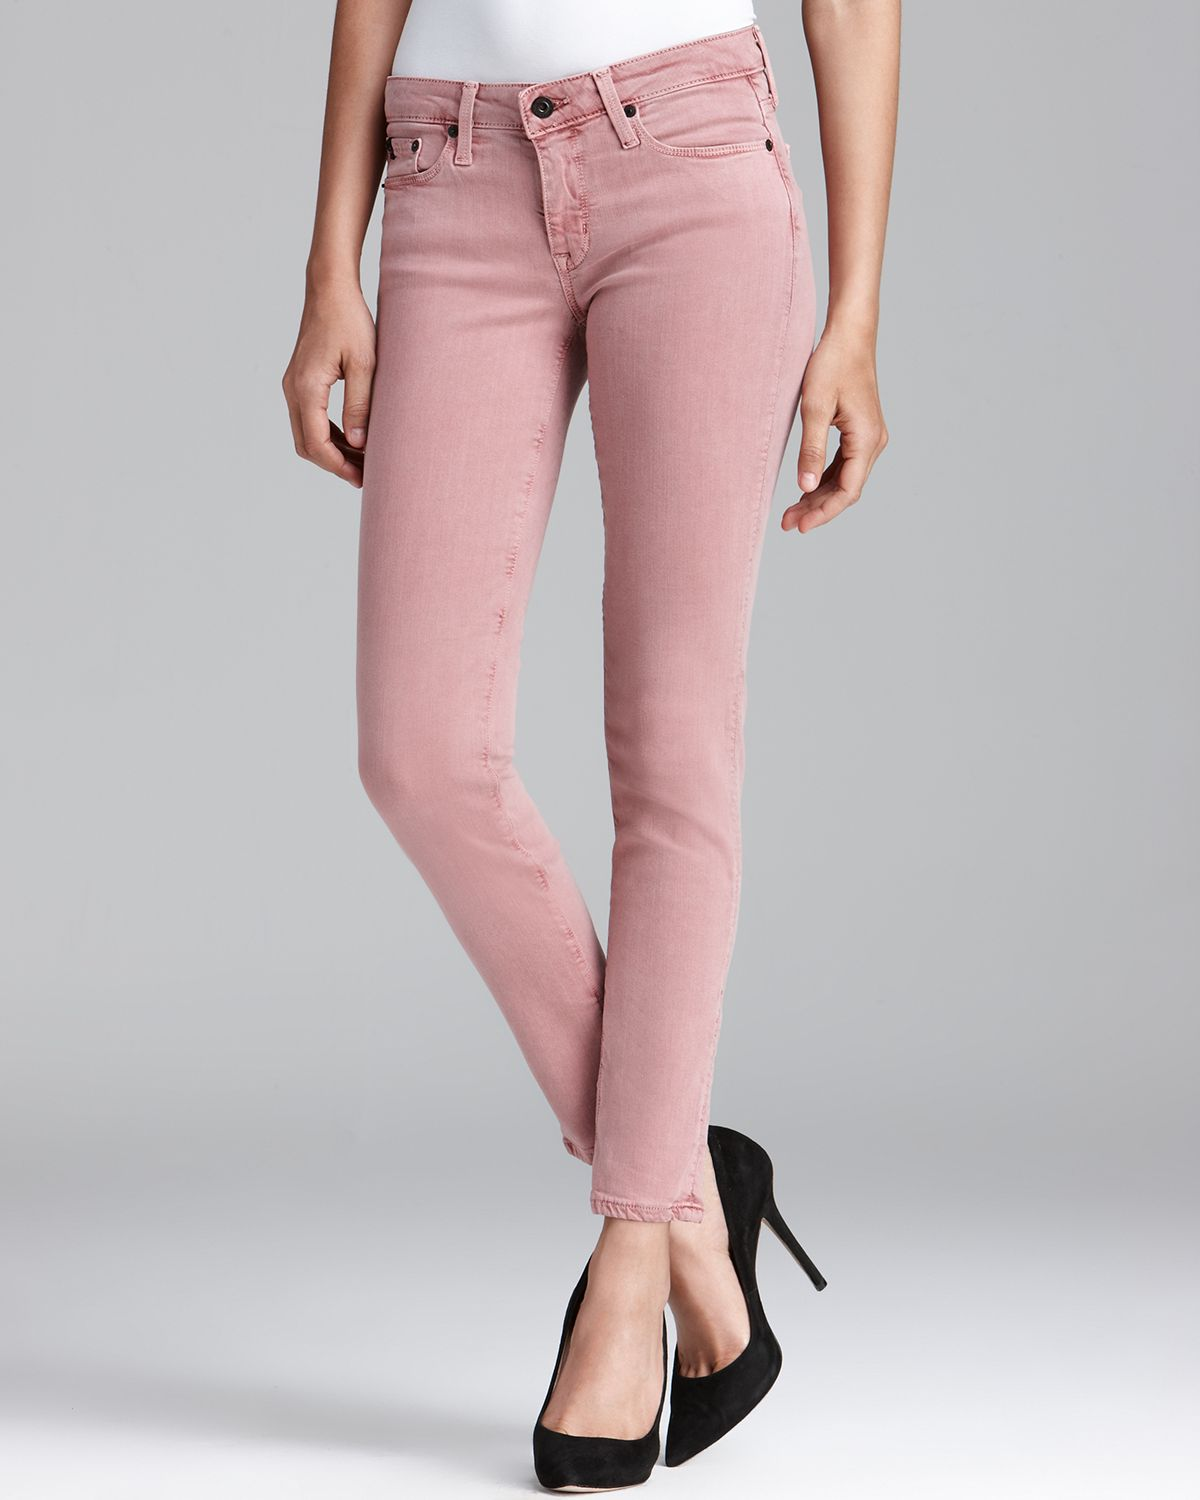 facee3d5fa8 Lyst - Big Star Jeans Alex Skinny in Rose in Pink